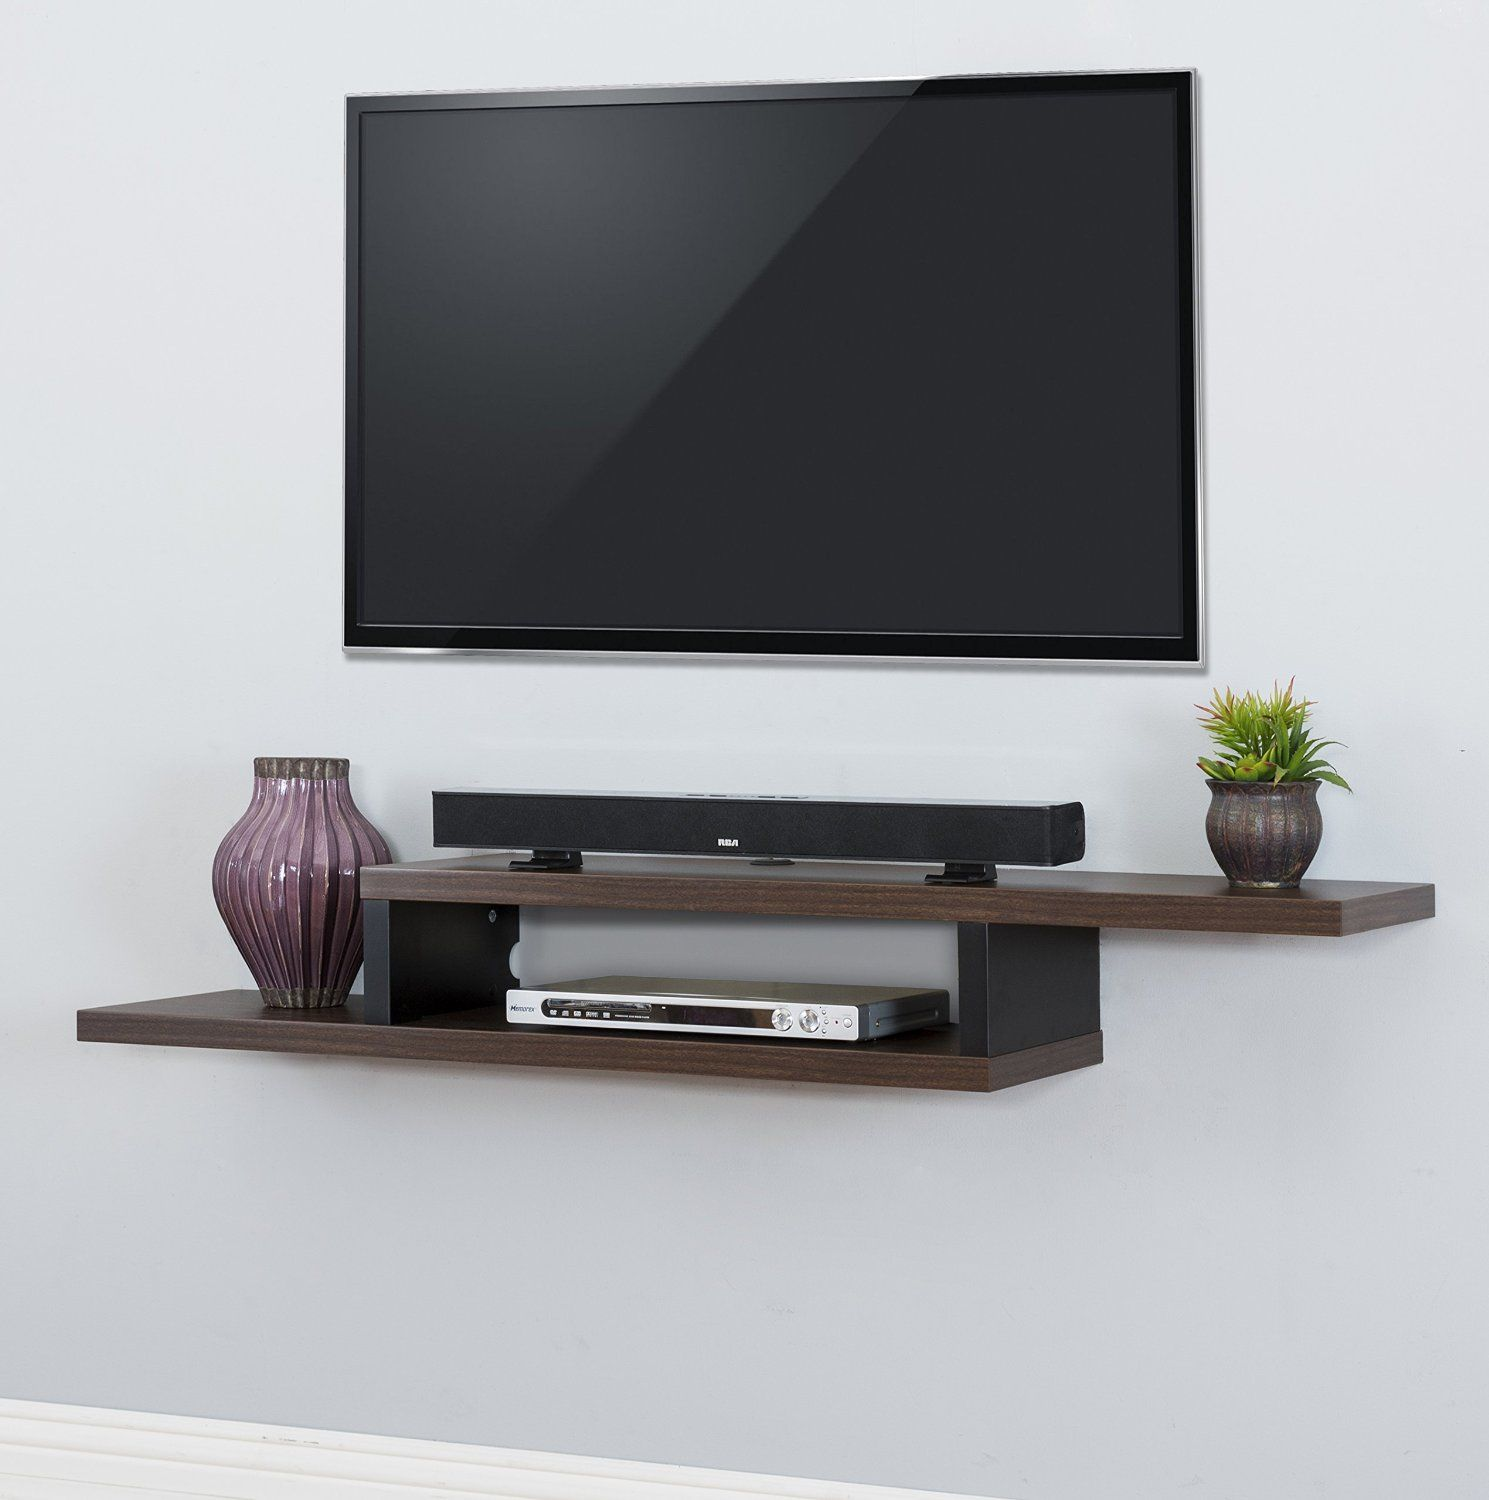 18 Chic And Modern Tv Wall Mount Ideas For Living Room Wall Mount Tv Shelf Wall Mounted Tv Console Wall Mounted Shelves